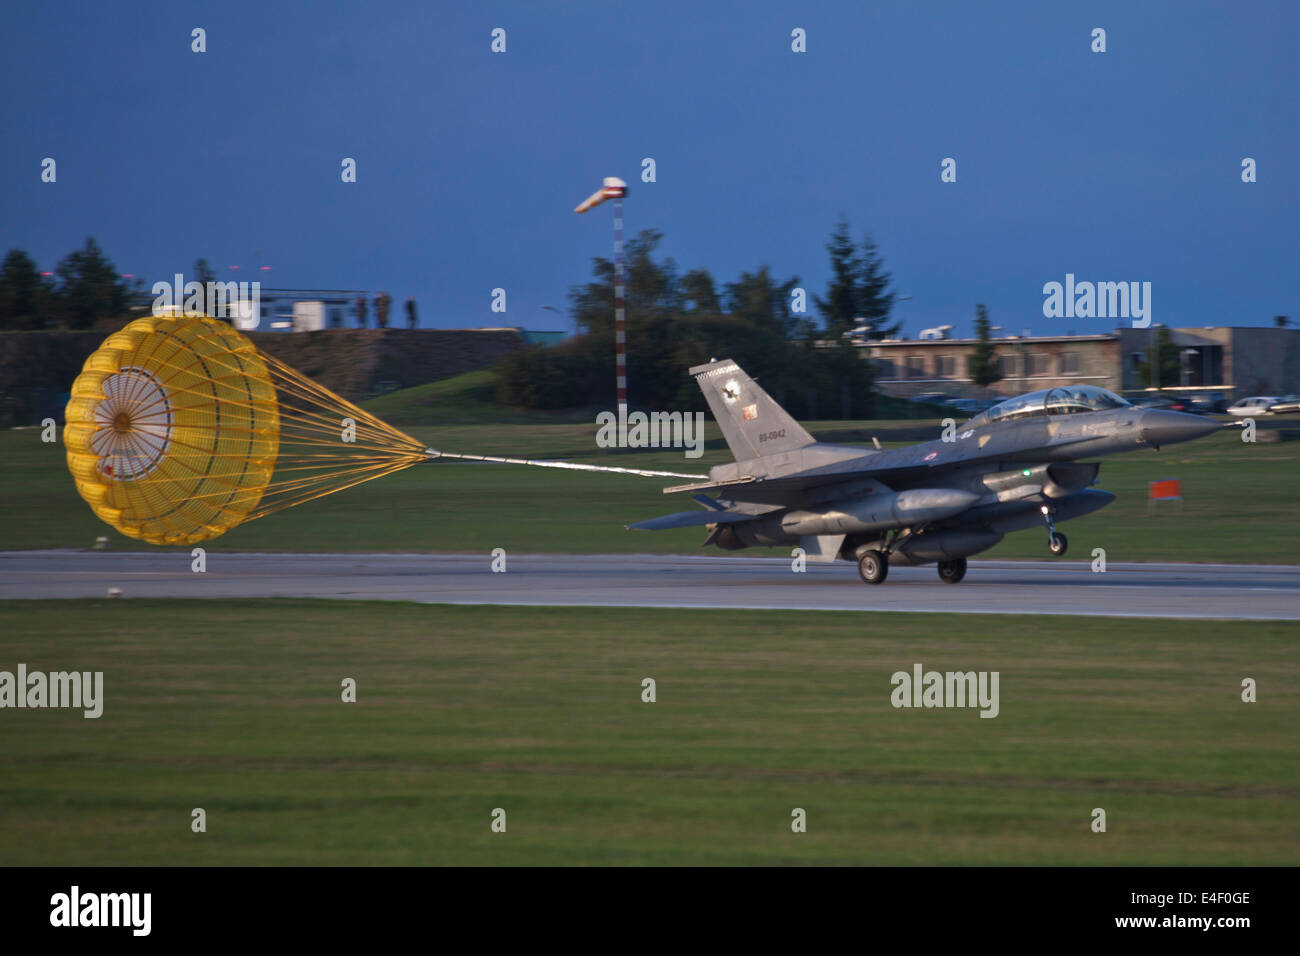 Turkish Air Force F-16D landing during NATO Exercise Ramstein Rover, Namest, Czech Republic. - Stock Image